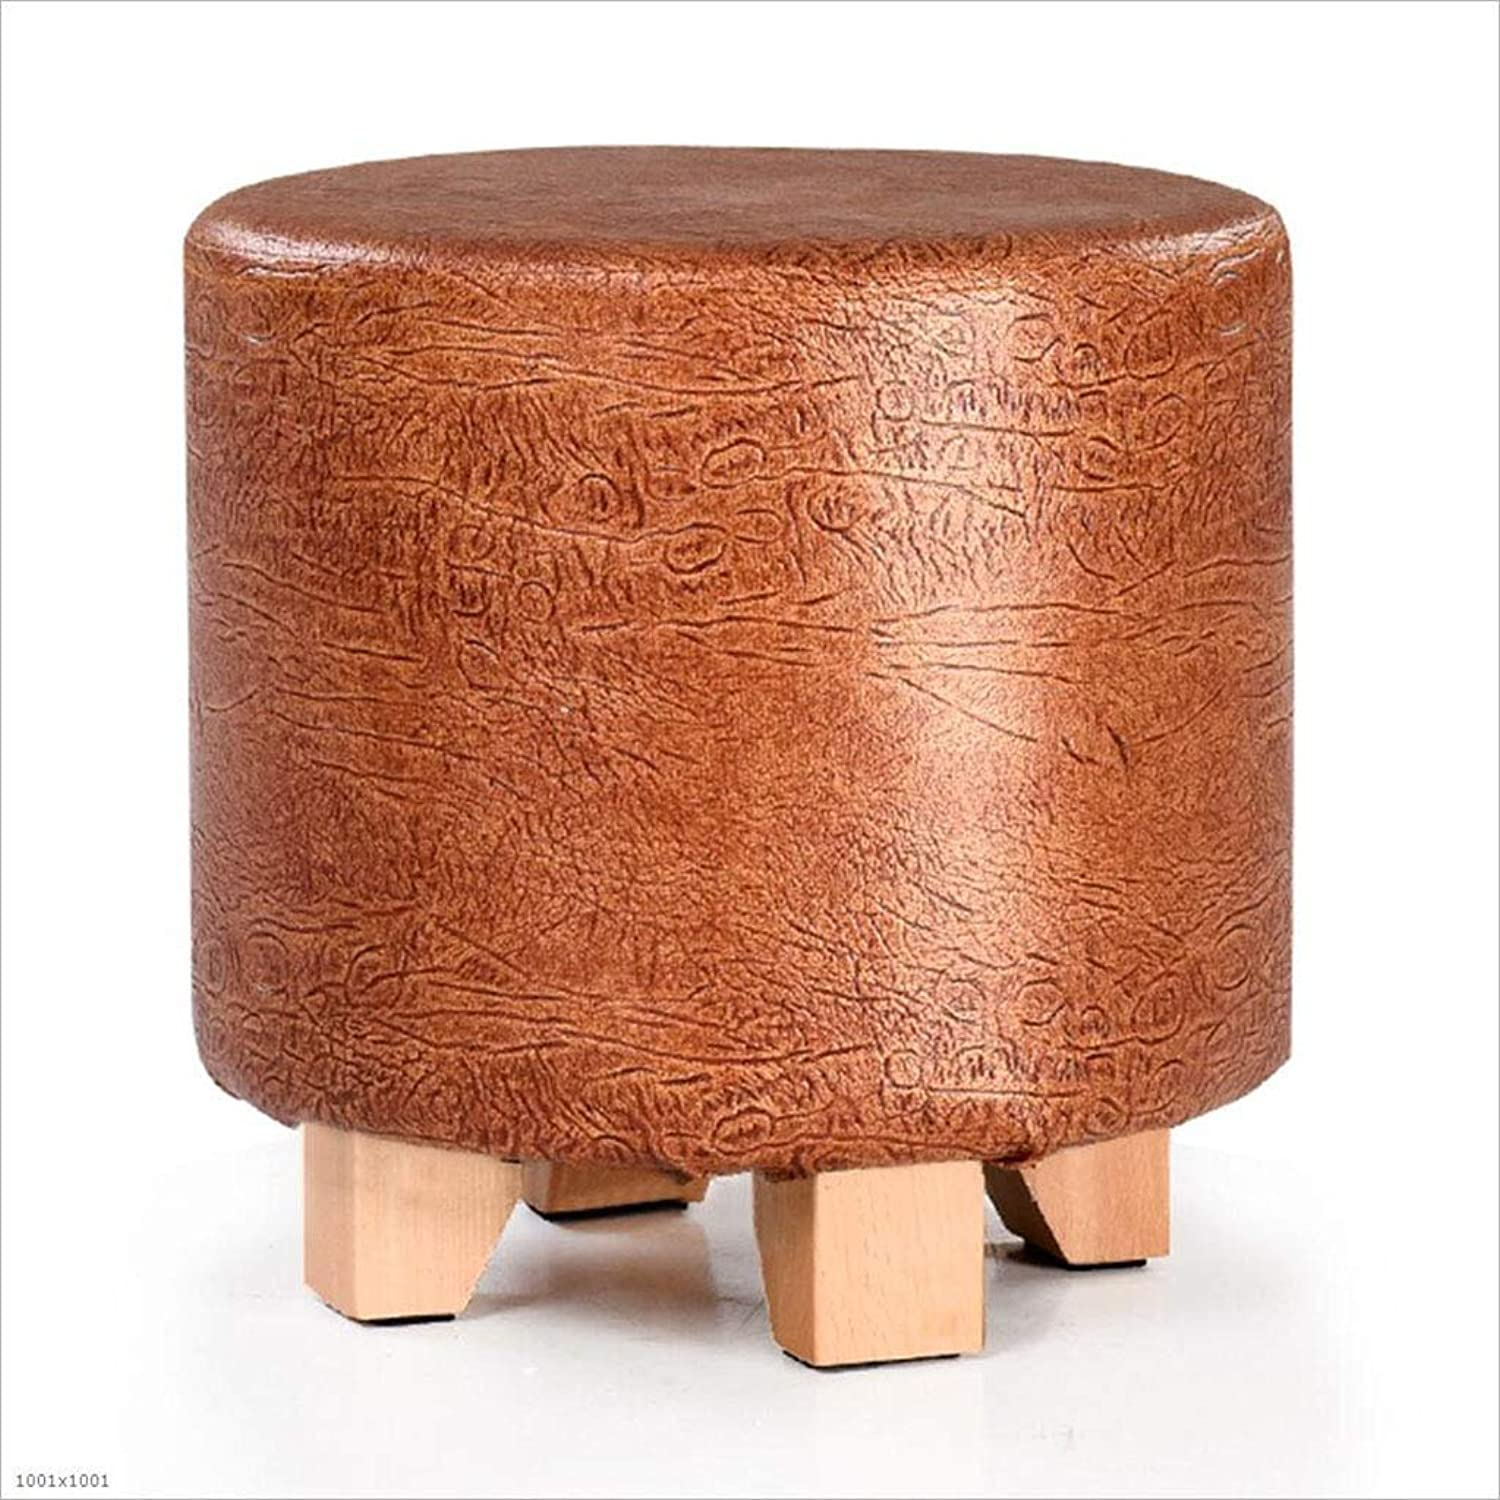 Solid Wood Footstool Round shoes Leather Surface Small Stool Waterproof Size 29X29x29cm,Darkgold